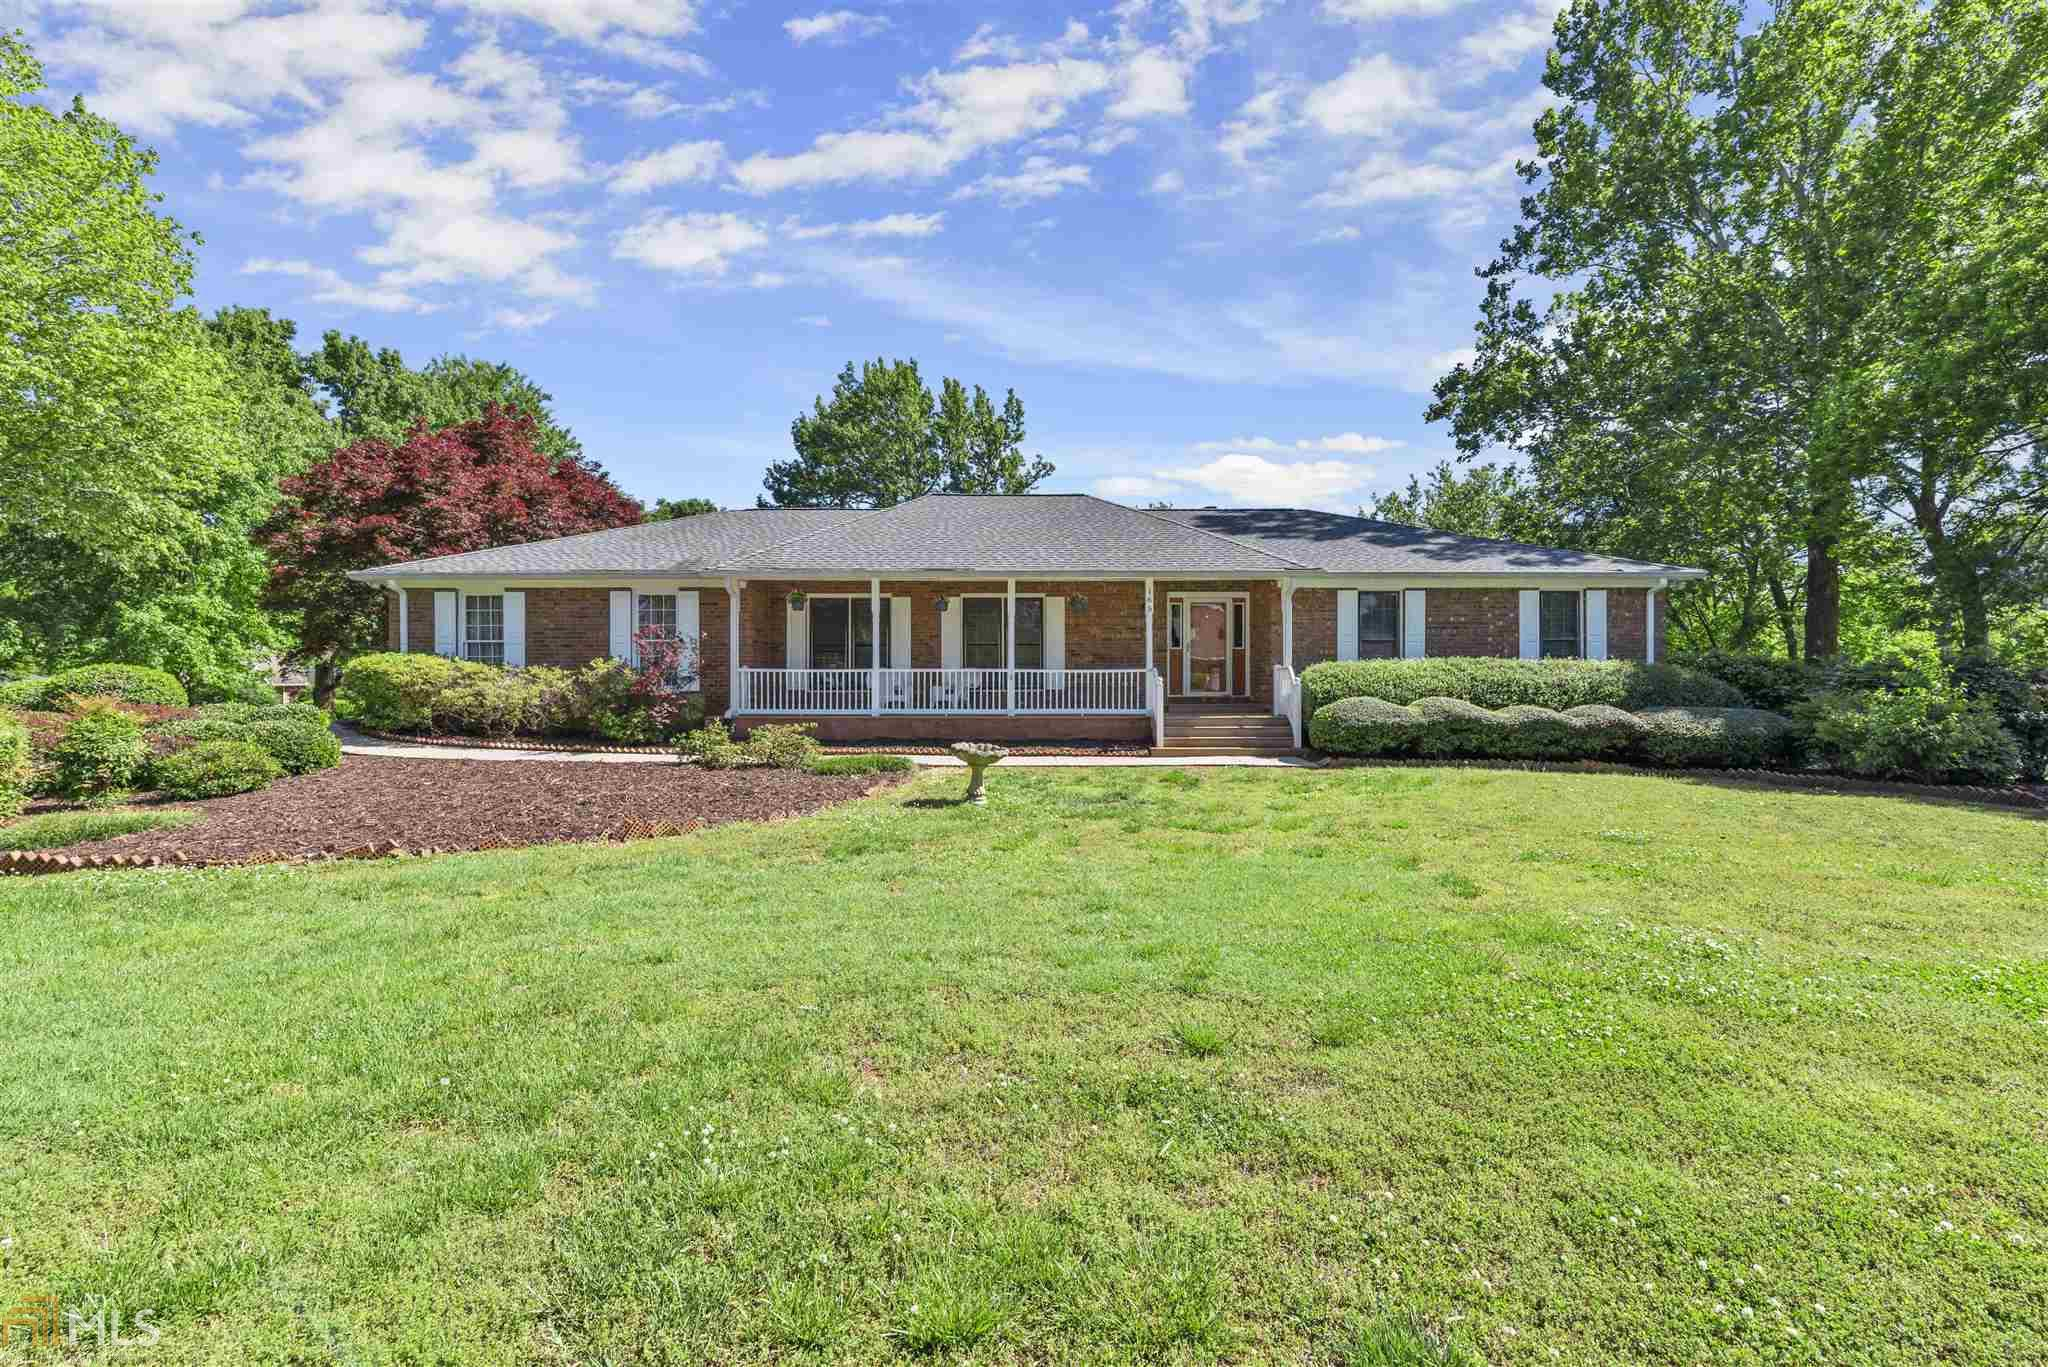 Image for property 165 Saddle Creek Dr, Roswell, GA 30076